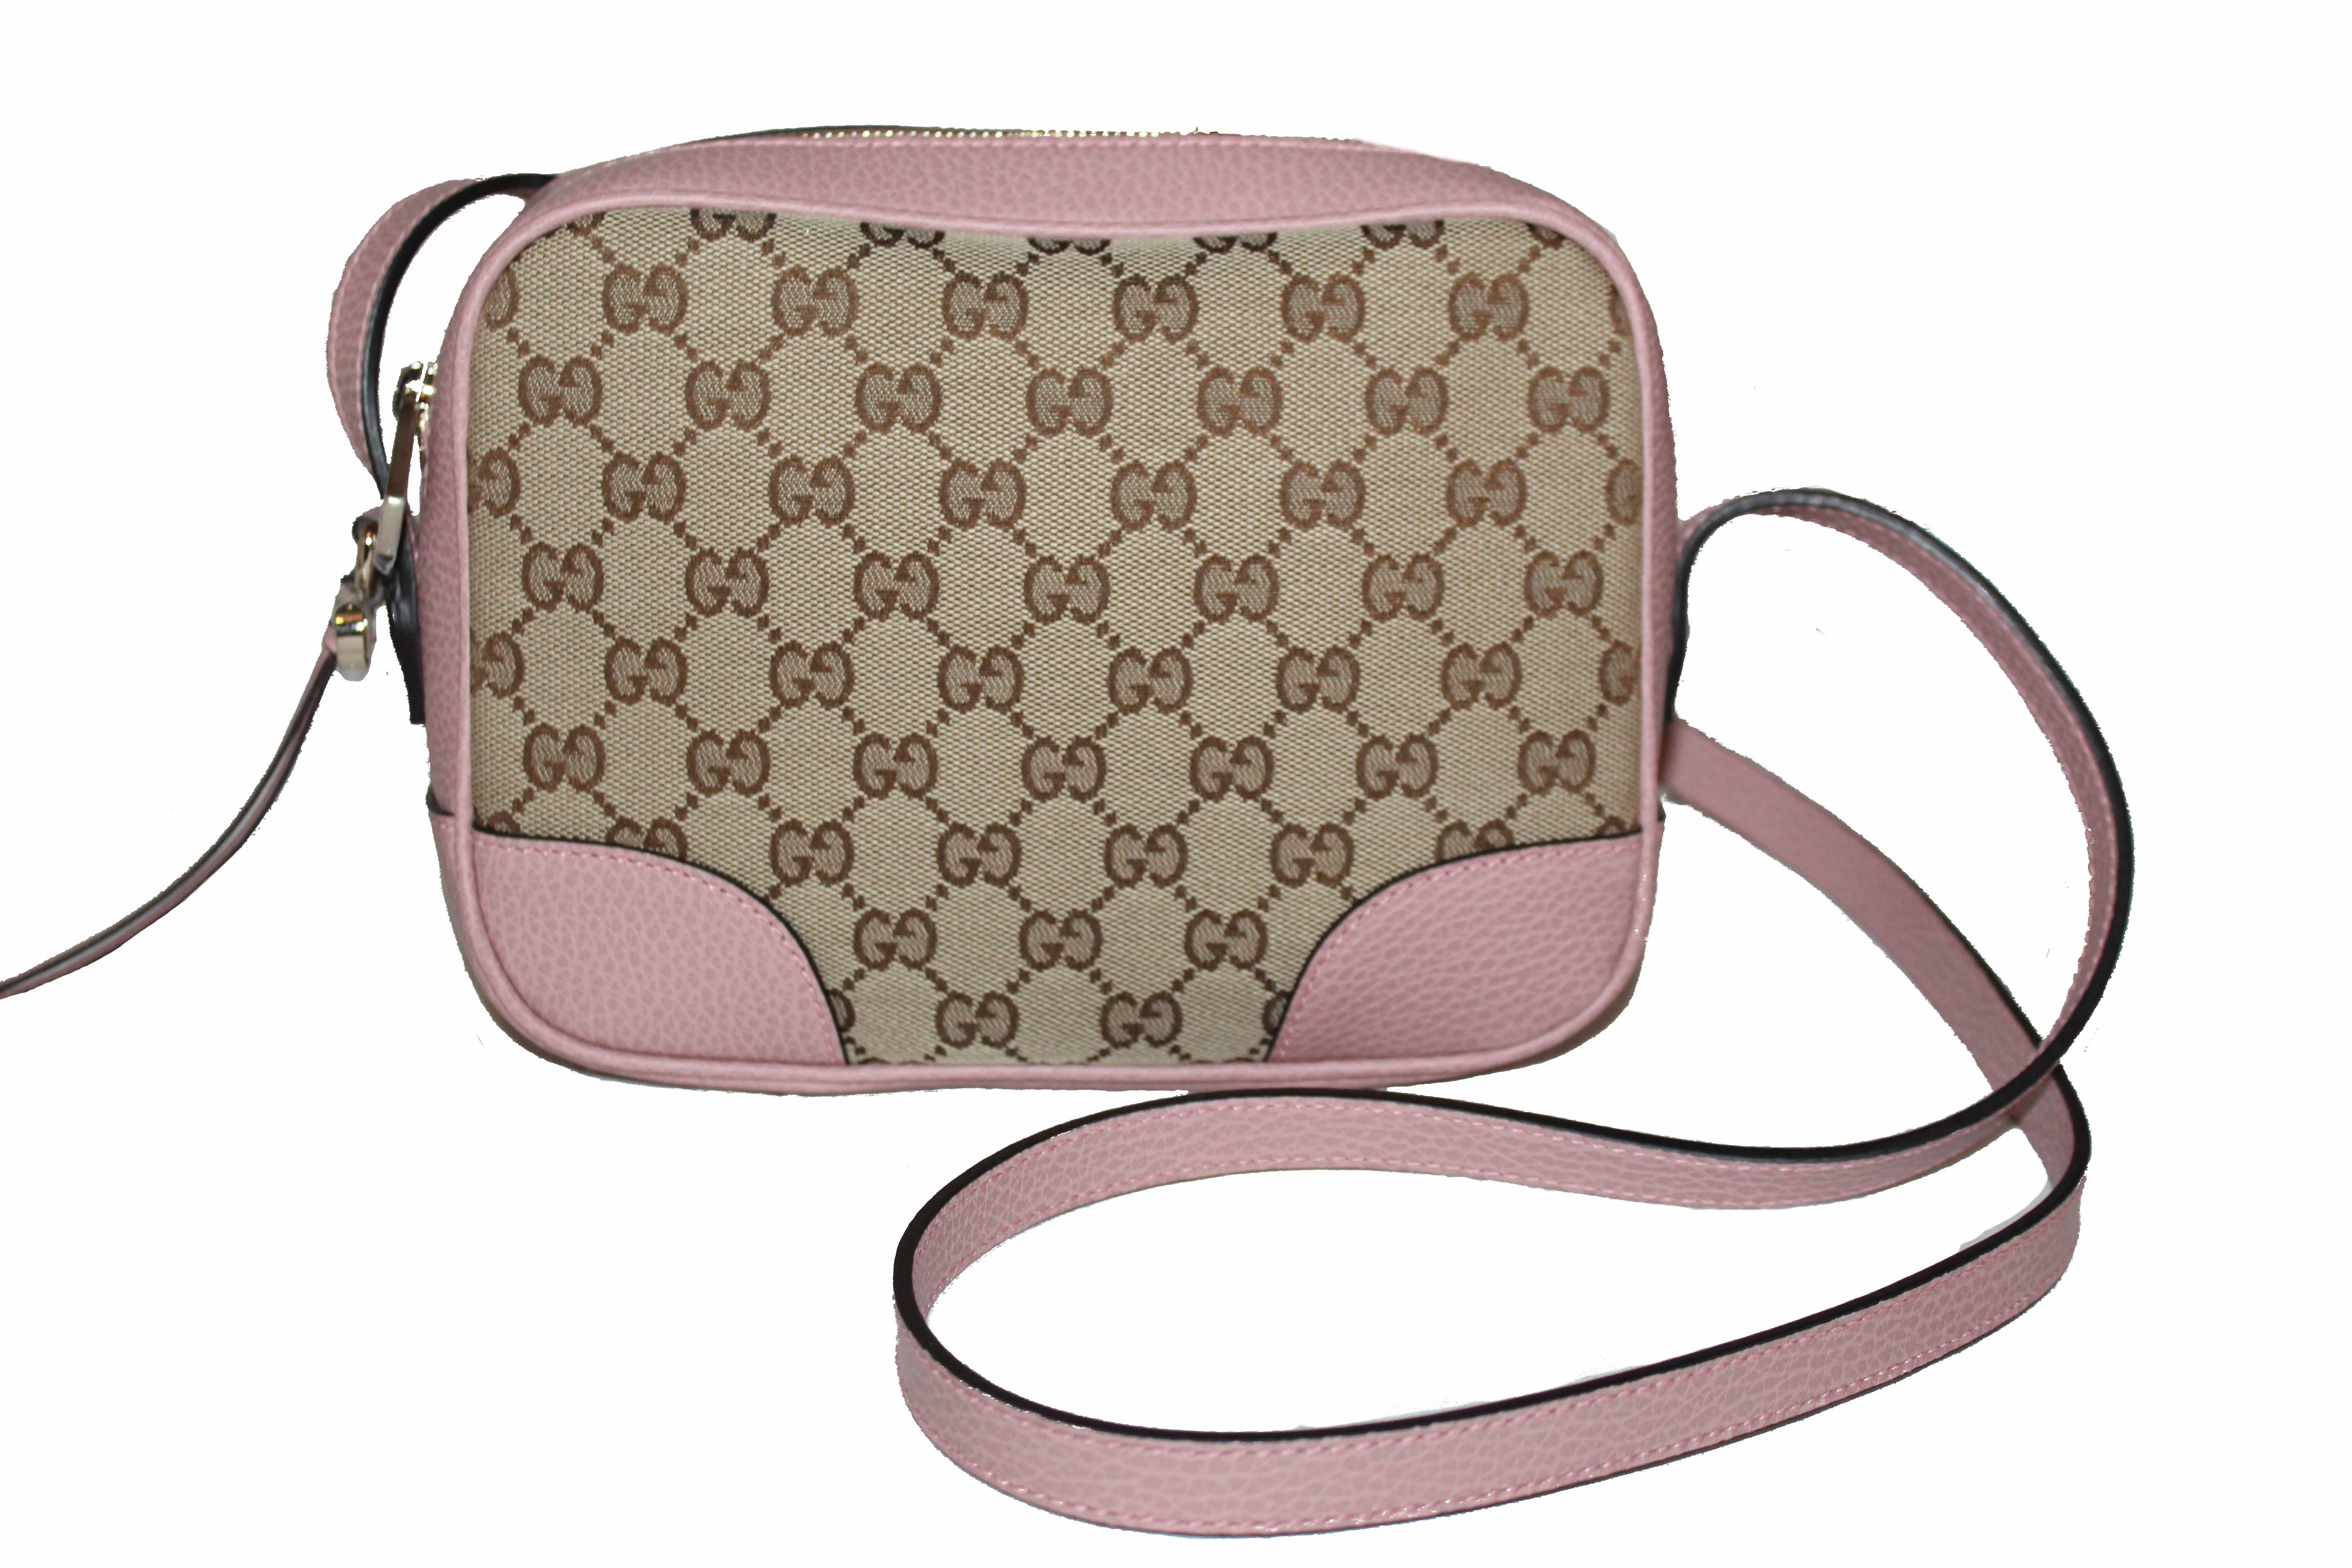 Authentic New Gucci Pink Signature GG Bree Crossbody Bag